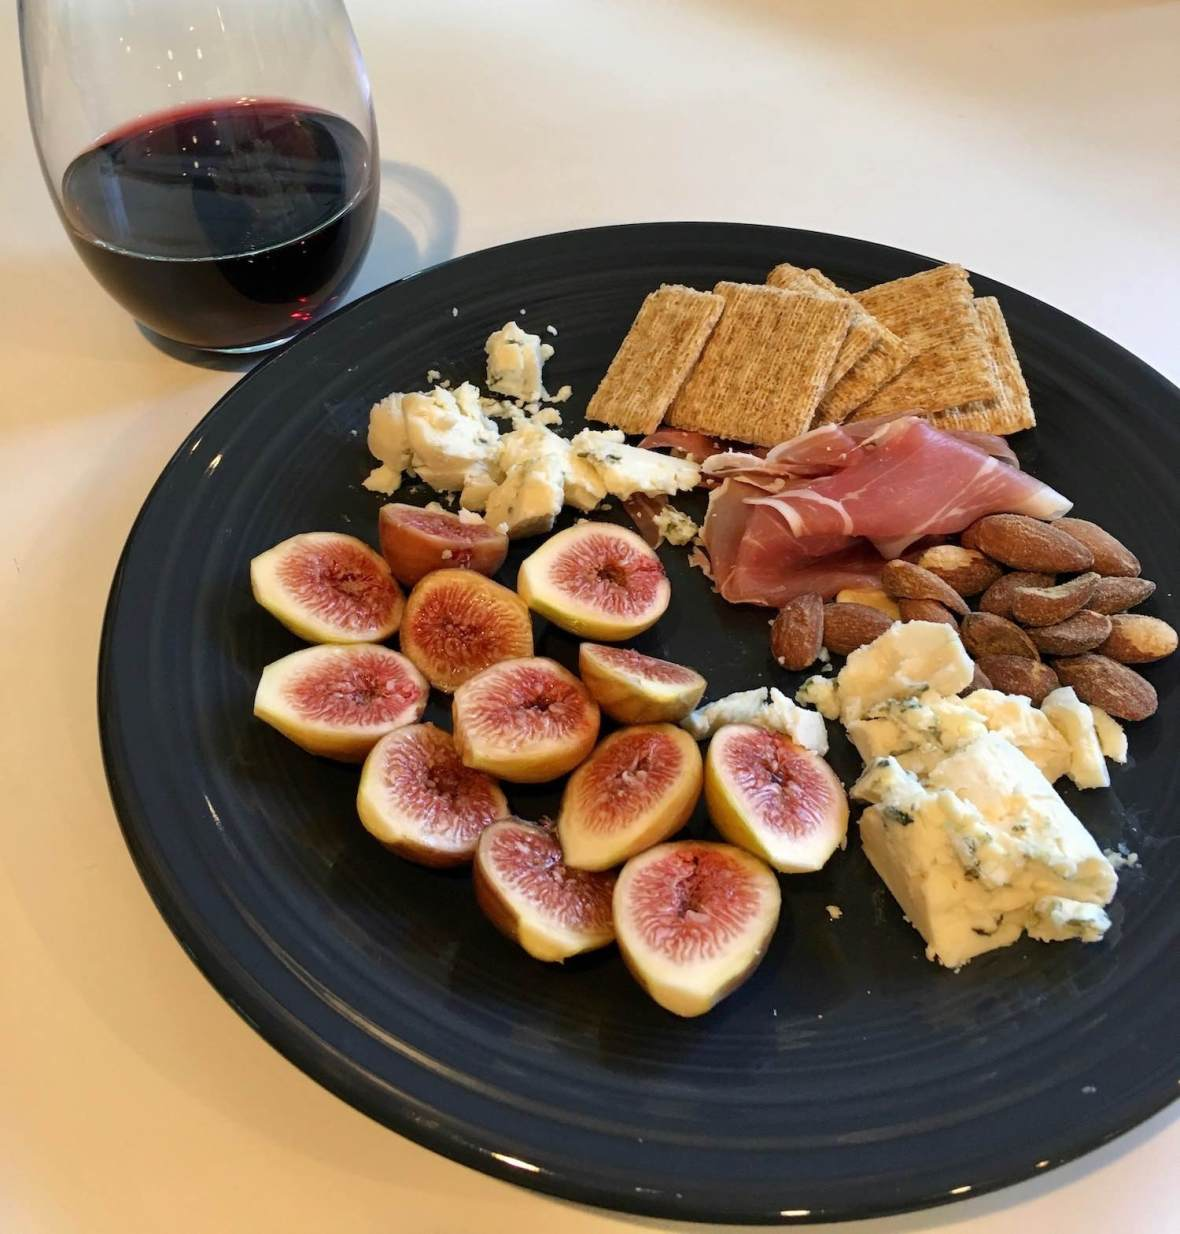 Prosciutto, figs, almonds, and blue cheese from Point Reyes